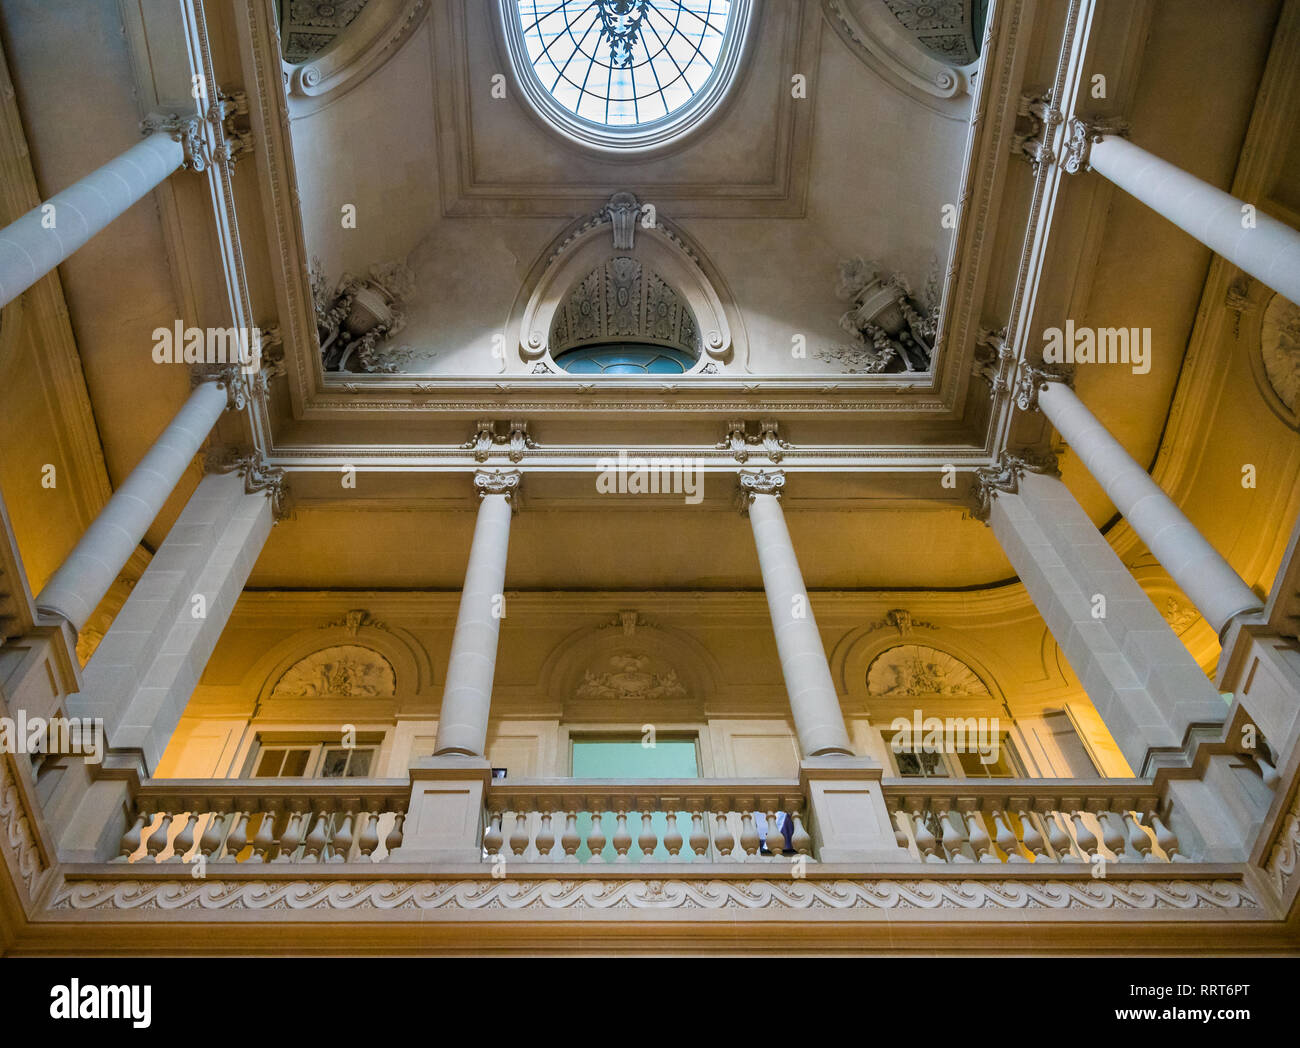 Buenos Aires, Argentina - October 21, 2015: Interior of the San Martin Palace (Palacio San Martin) serves as the Ceremonial Headquarters for the Minis - Stock Image